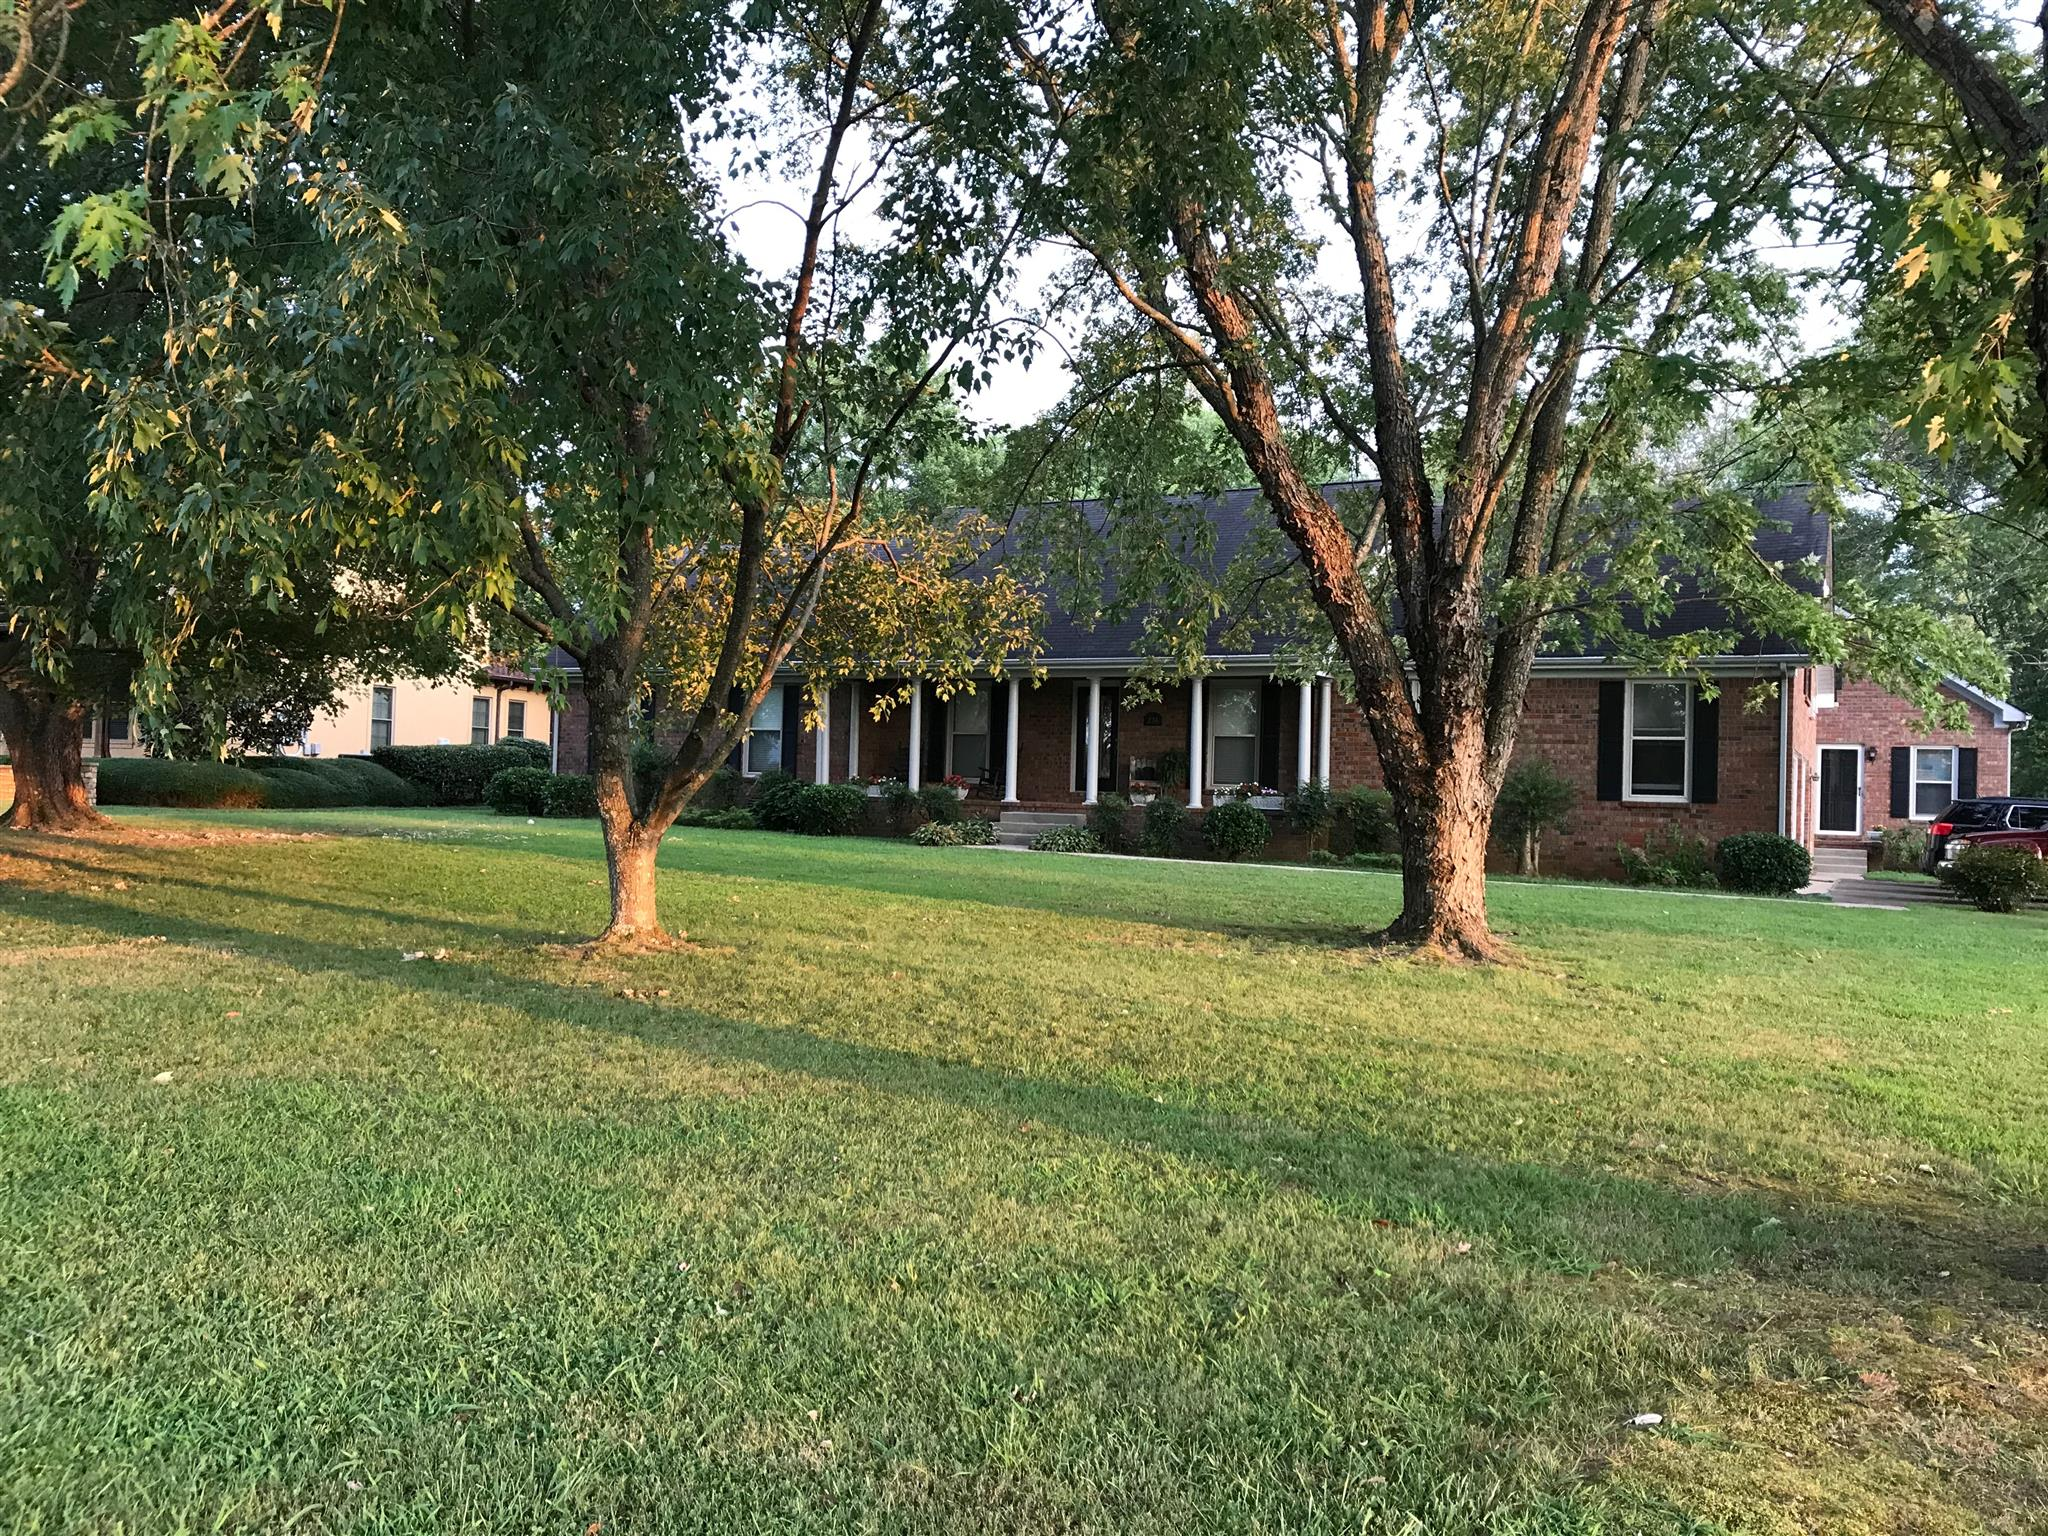 238 Council Bluff Pkwy, Murfreesboro, TN 37127 - Murfreesboro, TN real estate listing